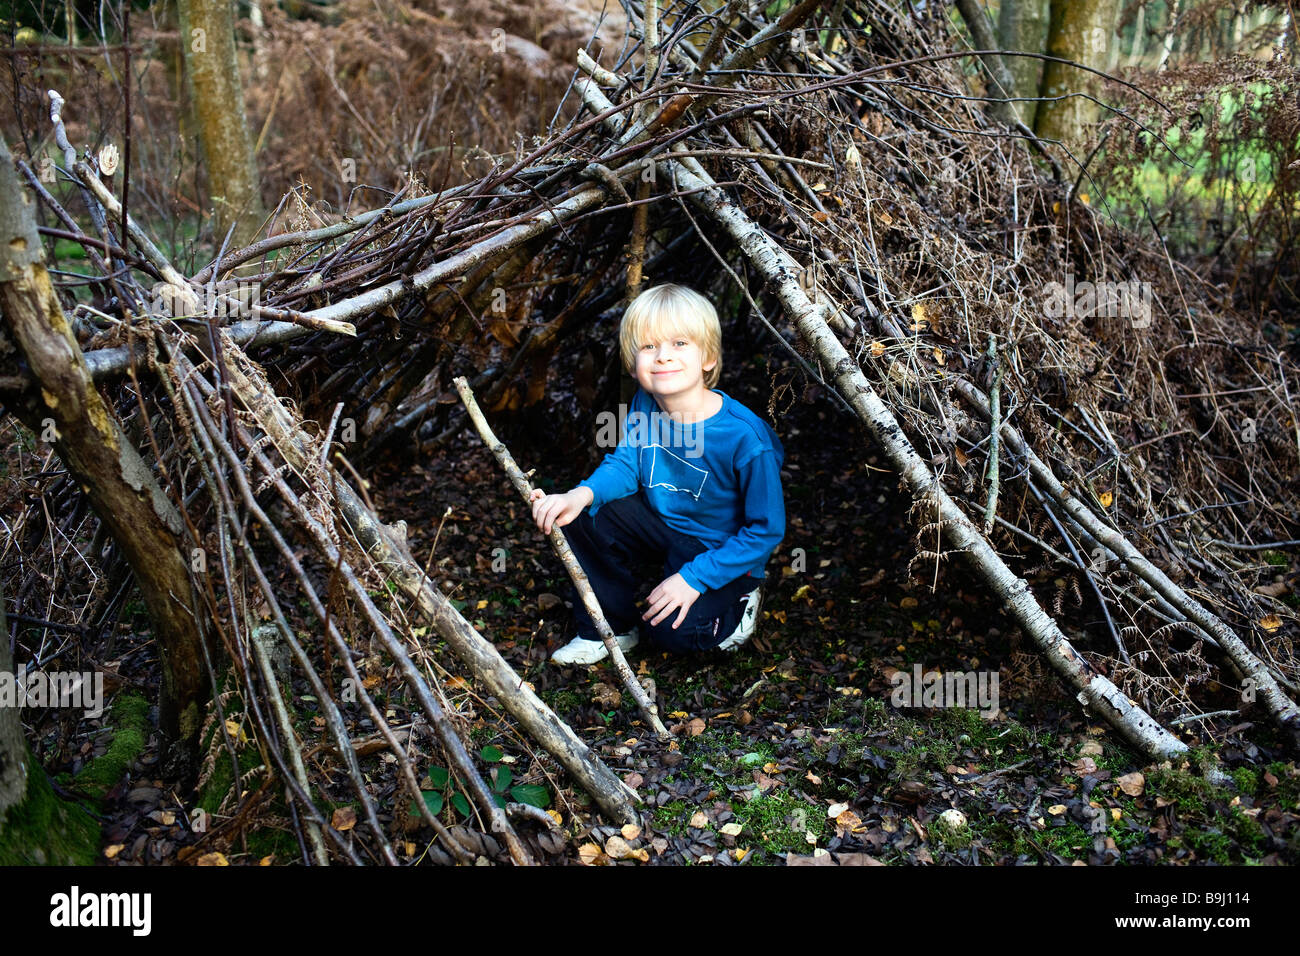 Boy in hut made of Tree branches - Stock Image